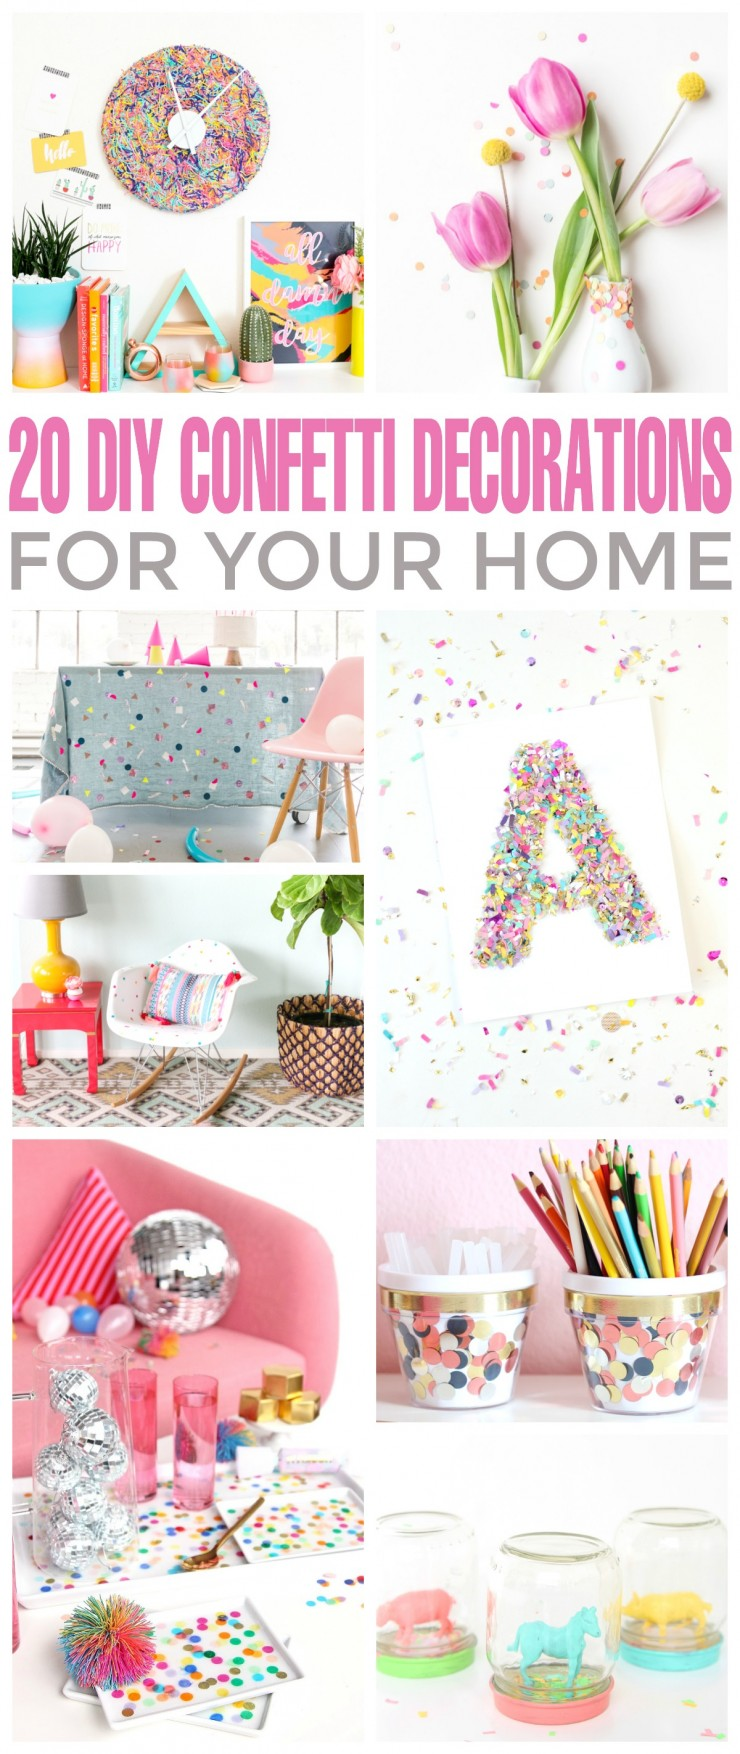 Add a splash of confetti to your decor to liven up any room! For some inspiration, just check out these 20 DIY confetti decorations for your home.